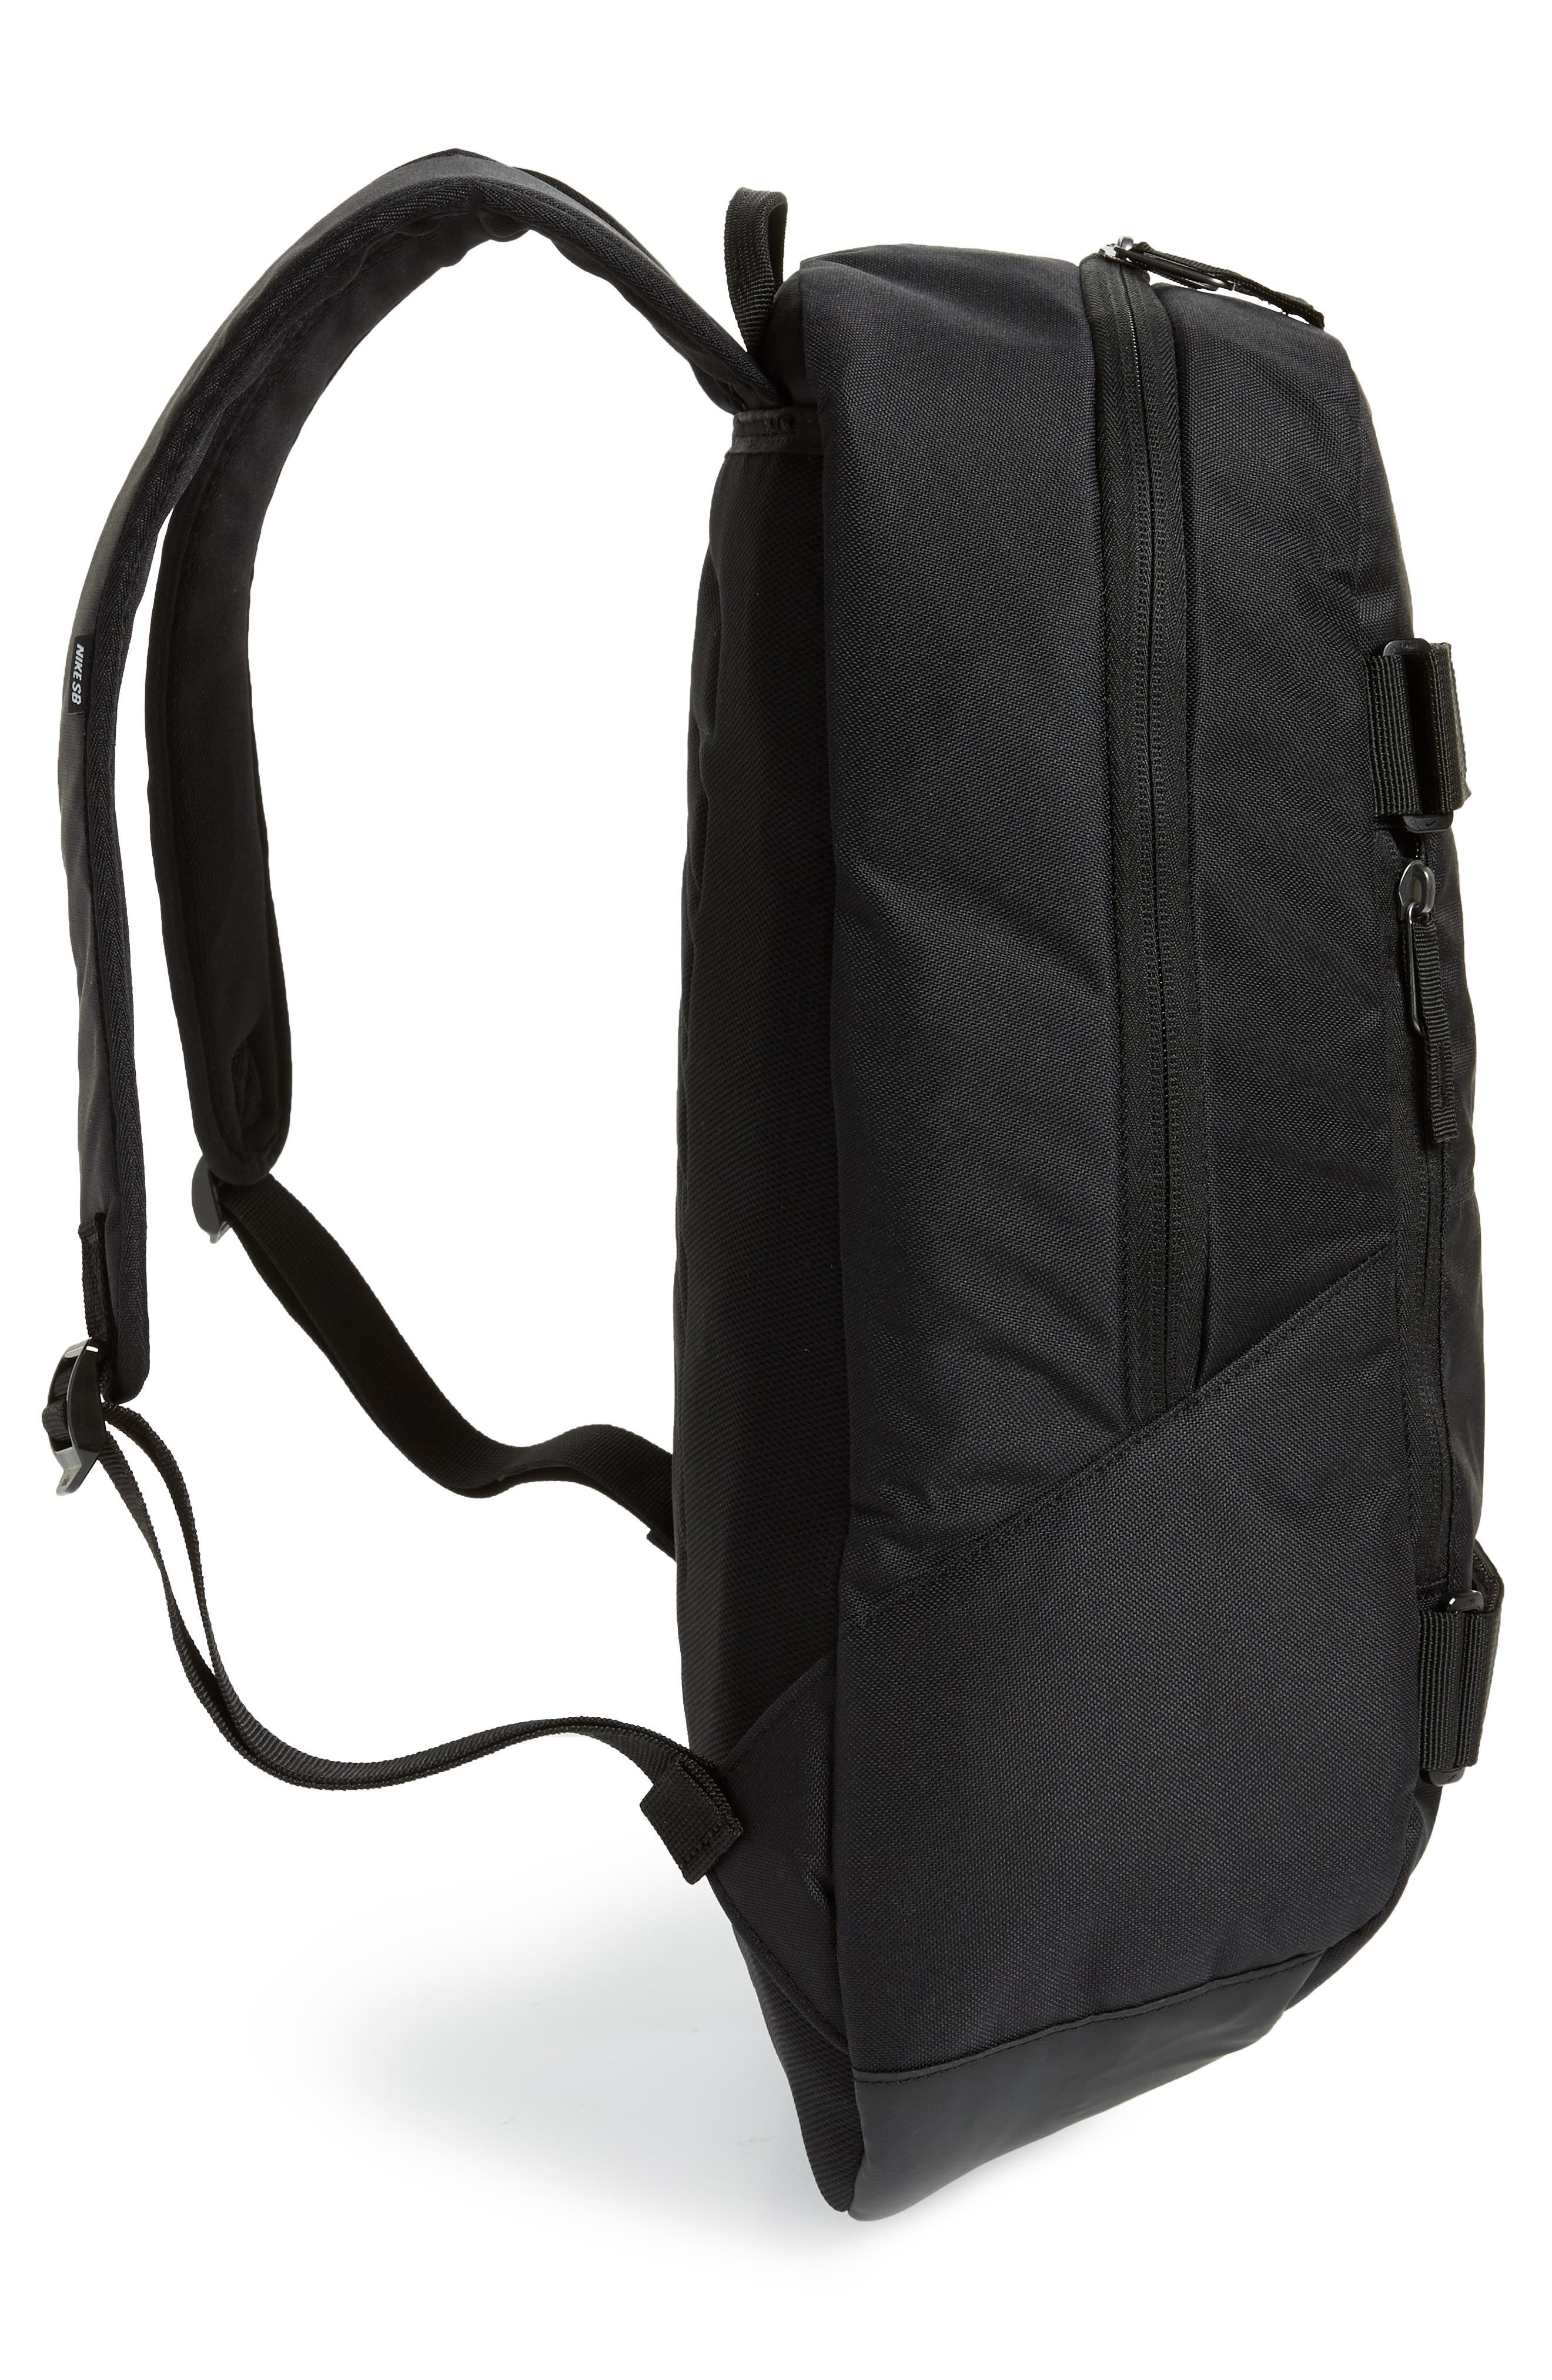 Courthouse Backpack,                             Alternate thumbnail 5, color,                             Black